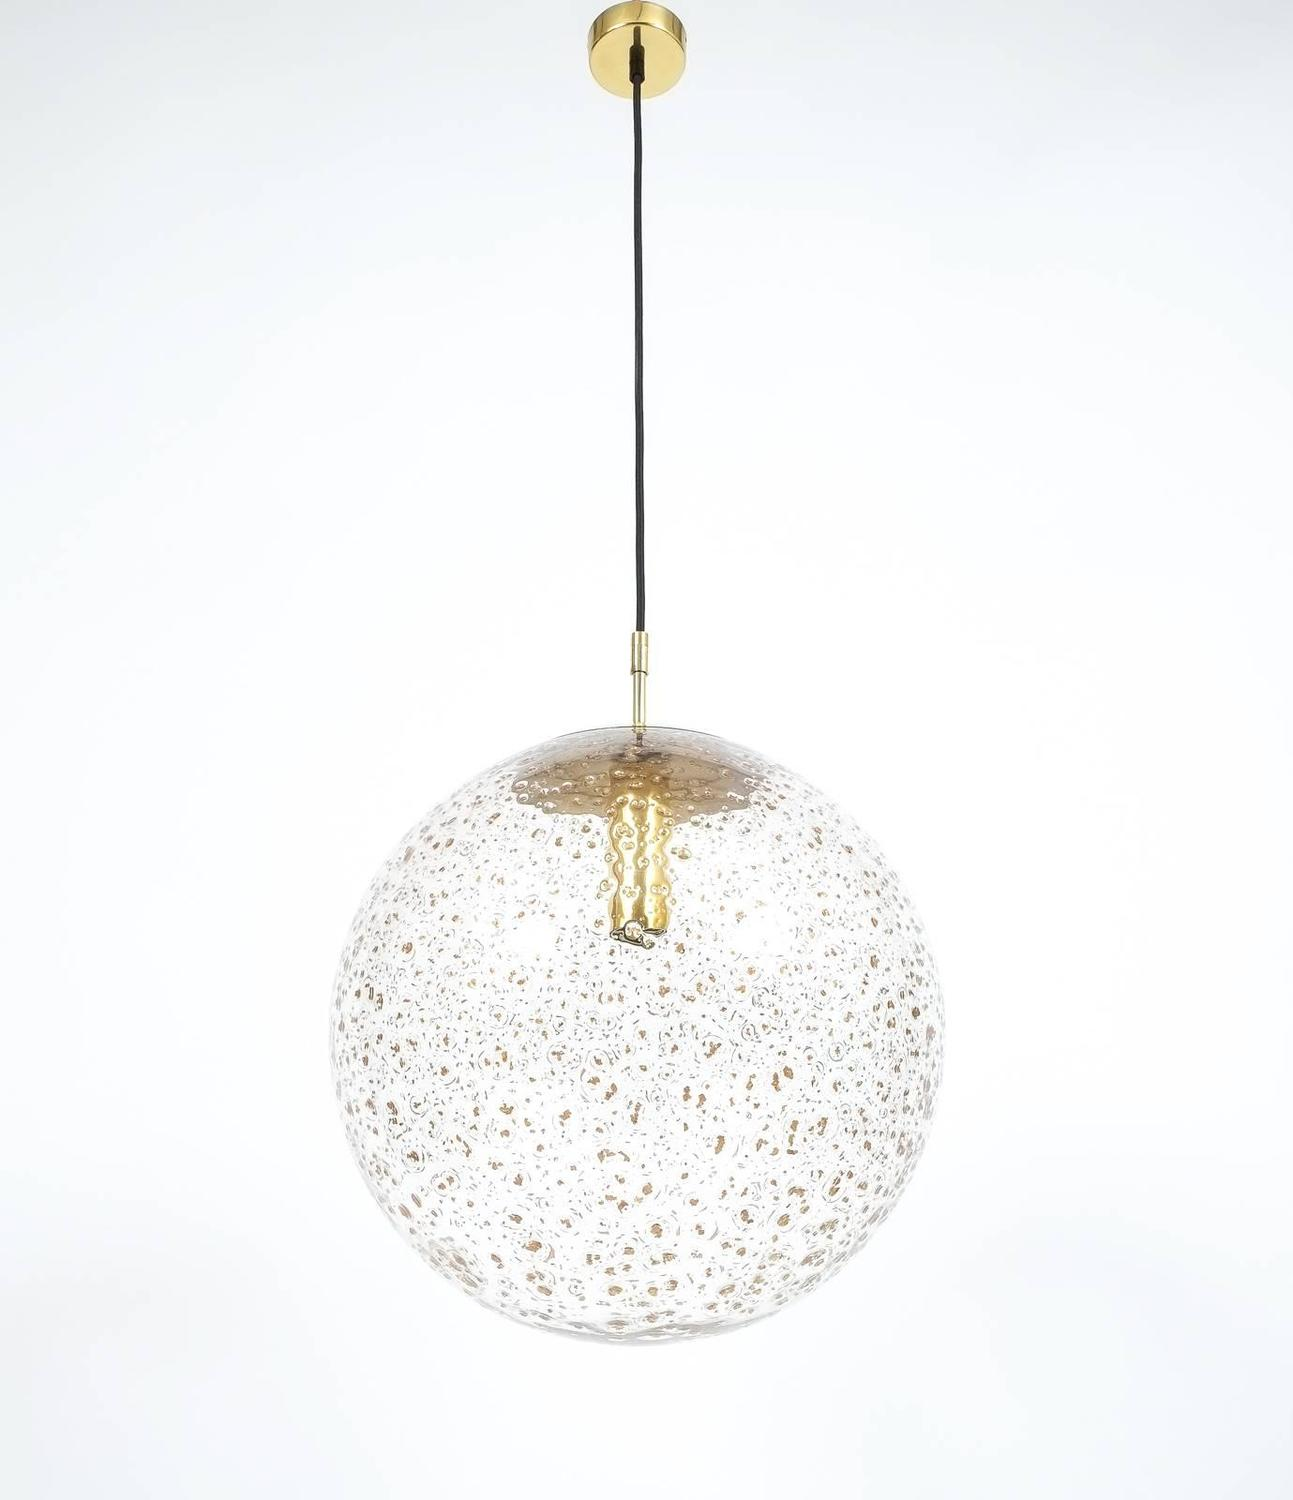 large limburg glass ball pendant for sale at 1stdibs